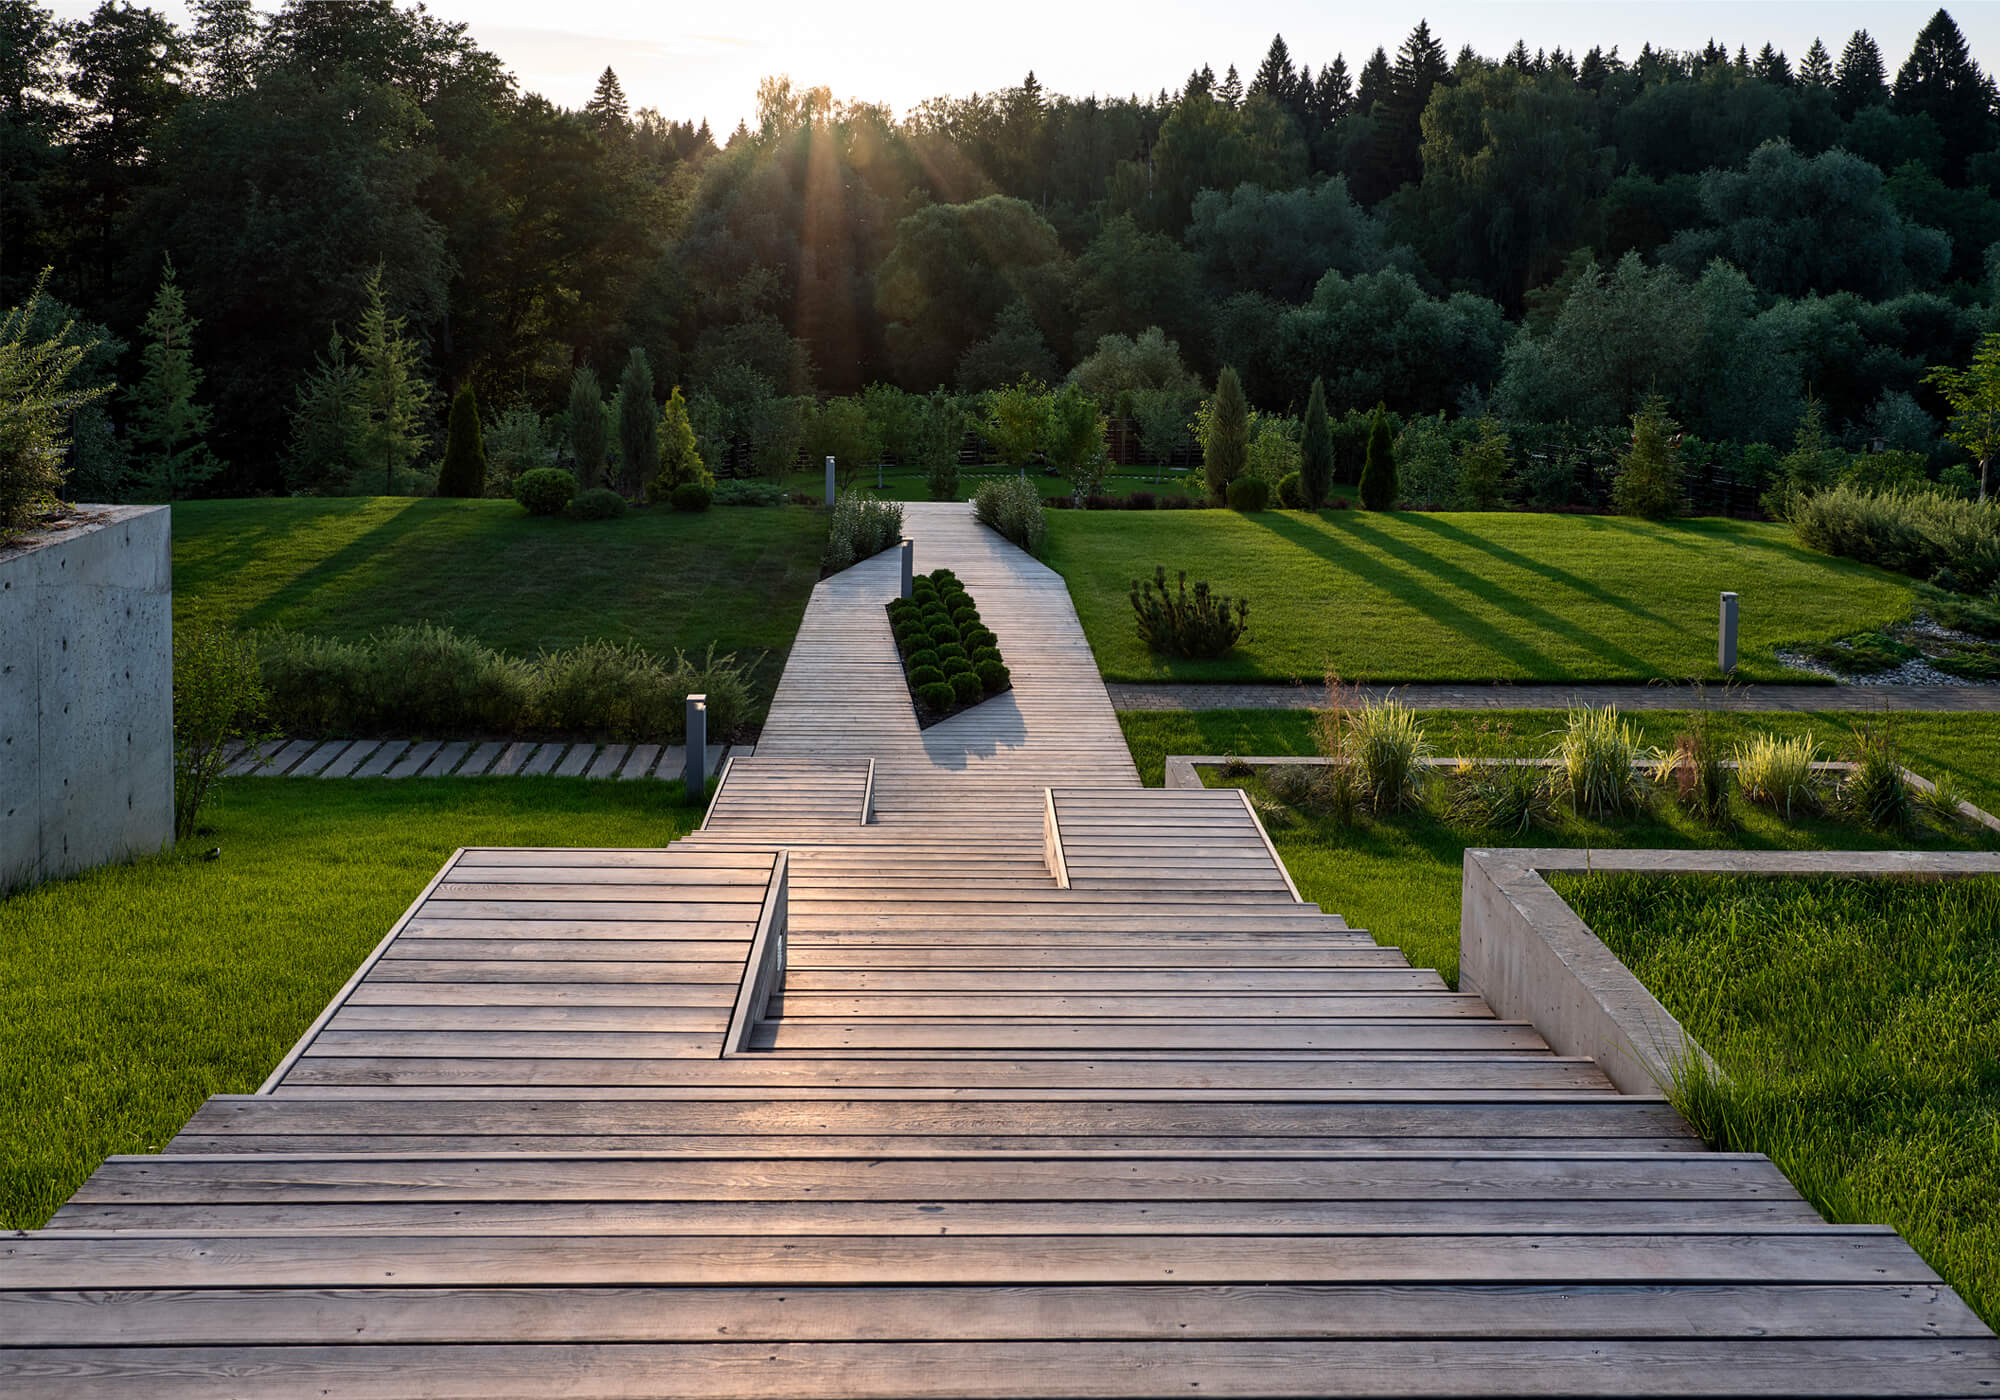 Landscape architecture and design in New Moscow 5